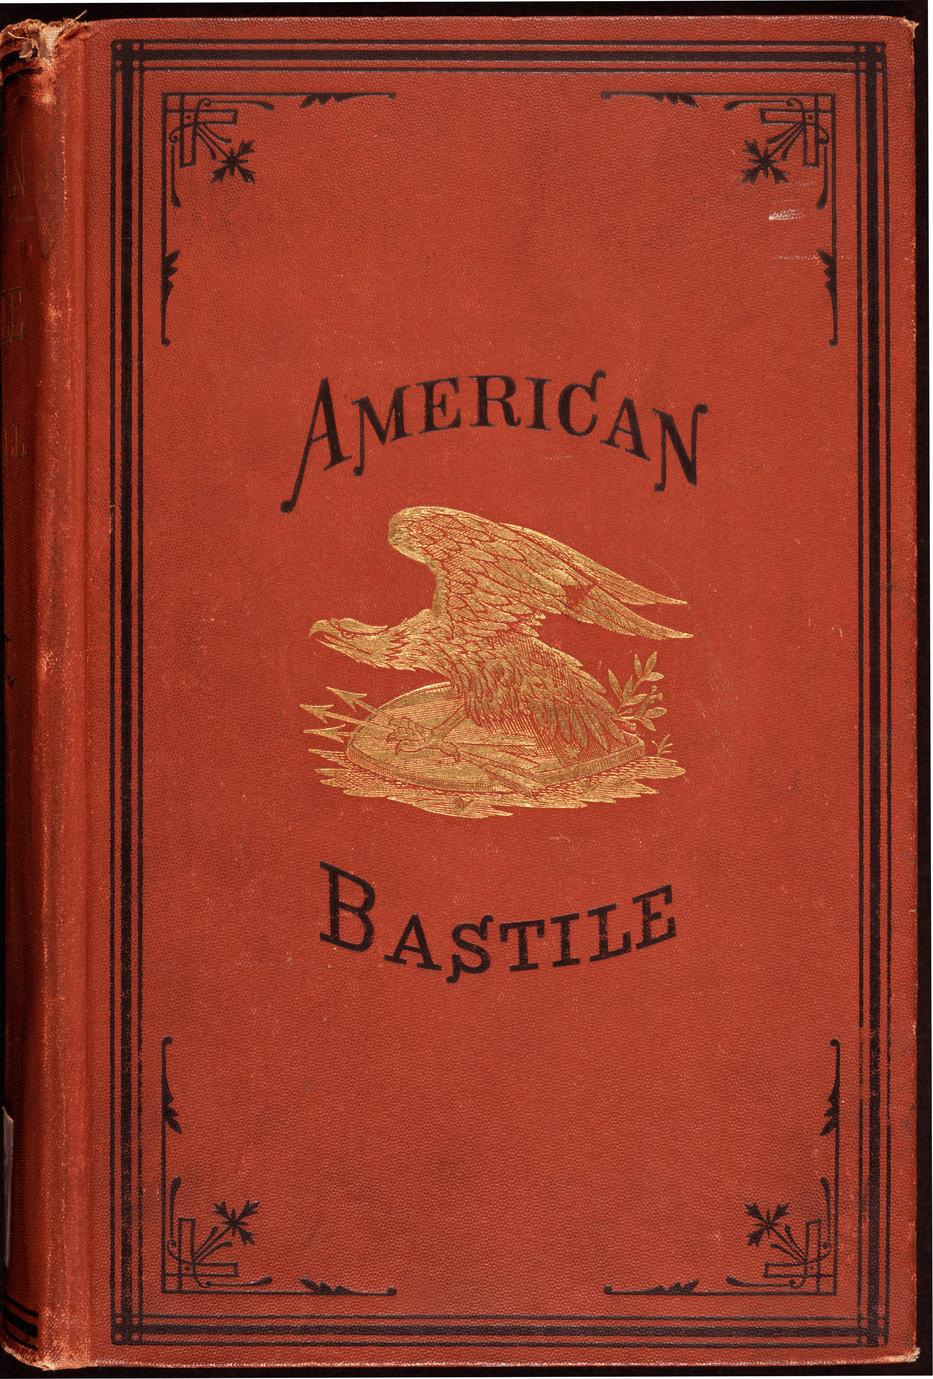 American bastile : a history of the illegal arrests and imprisonment of American citizens during the late Civil War (1 of 2)